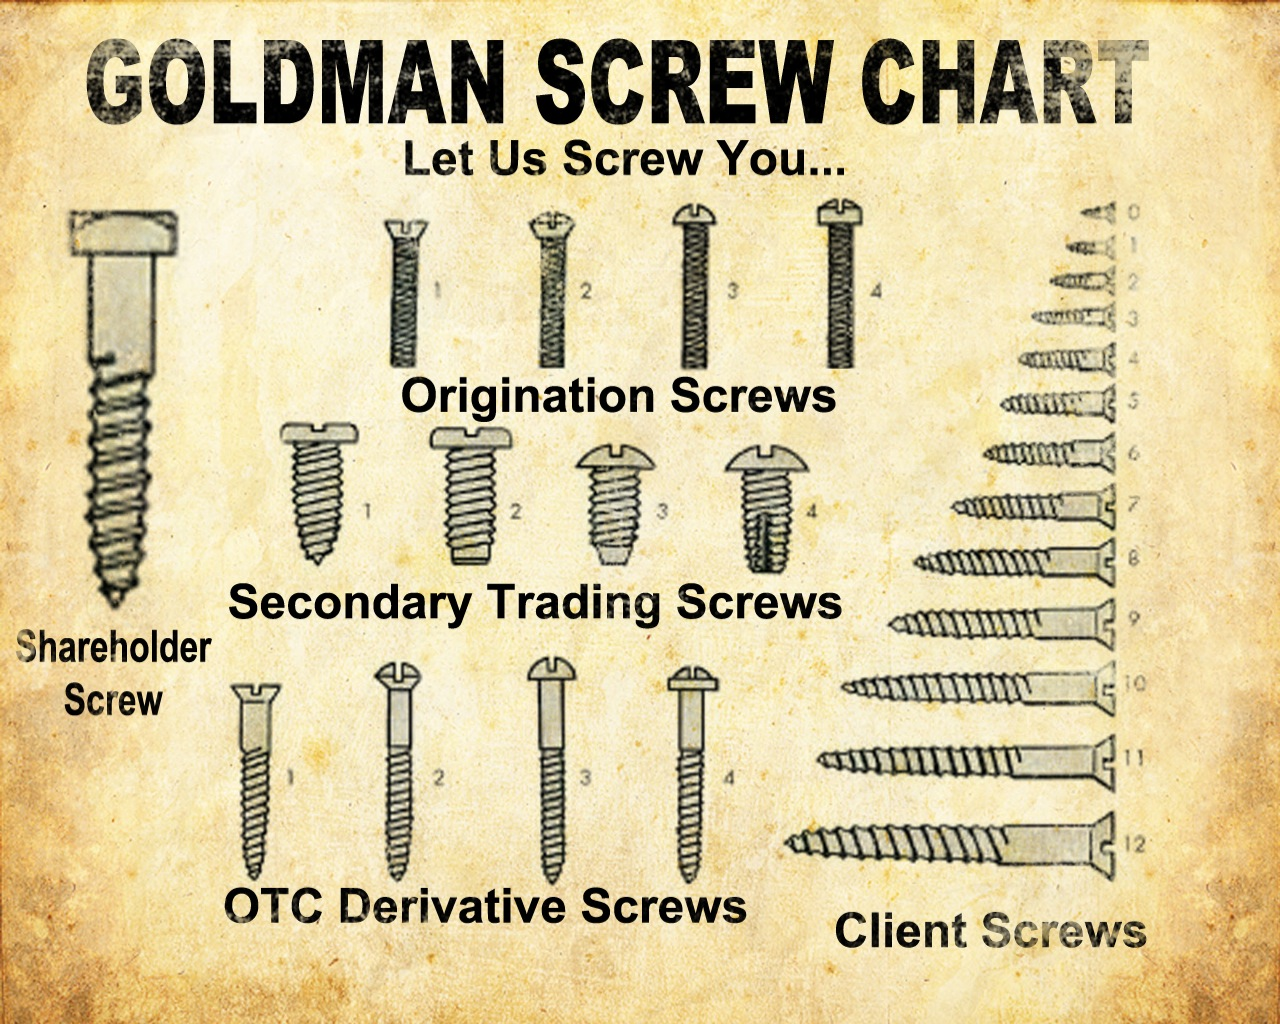 GOLDMAN SCREW CHART (w/Limerick)